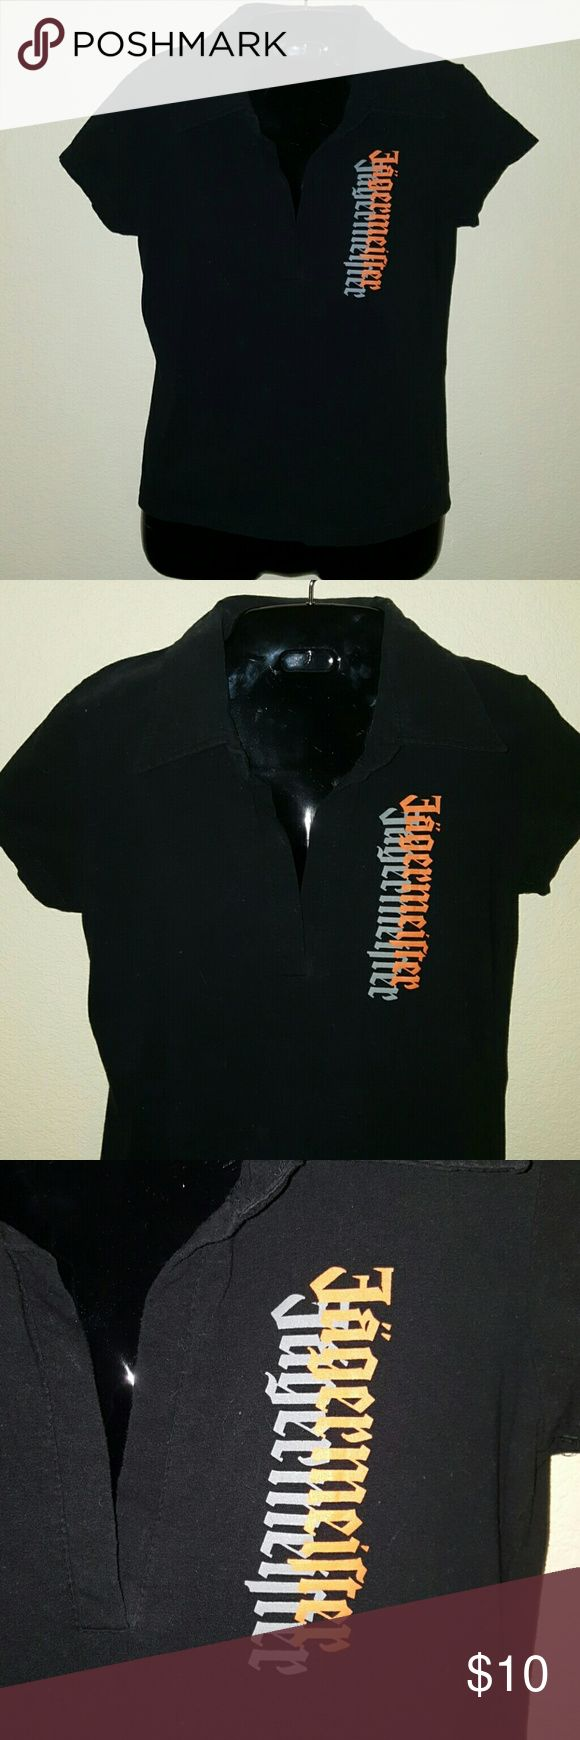 Jagermeister Polo Shirt **sale** Like new Polo Shirt with Jagermeister on front and back of shirt in orange. Tops